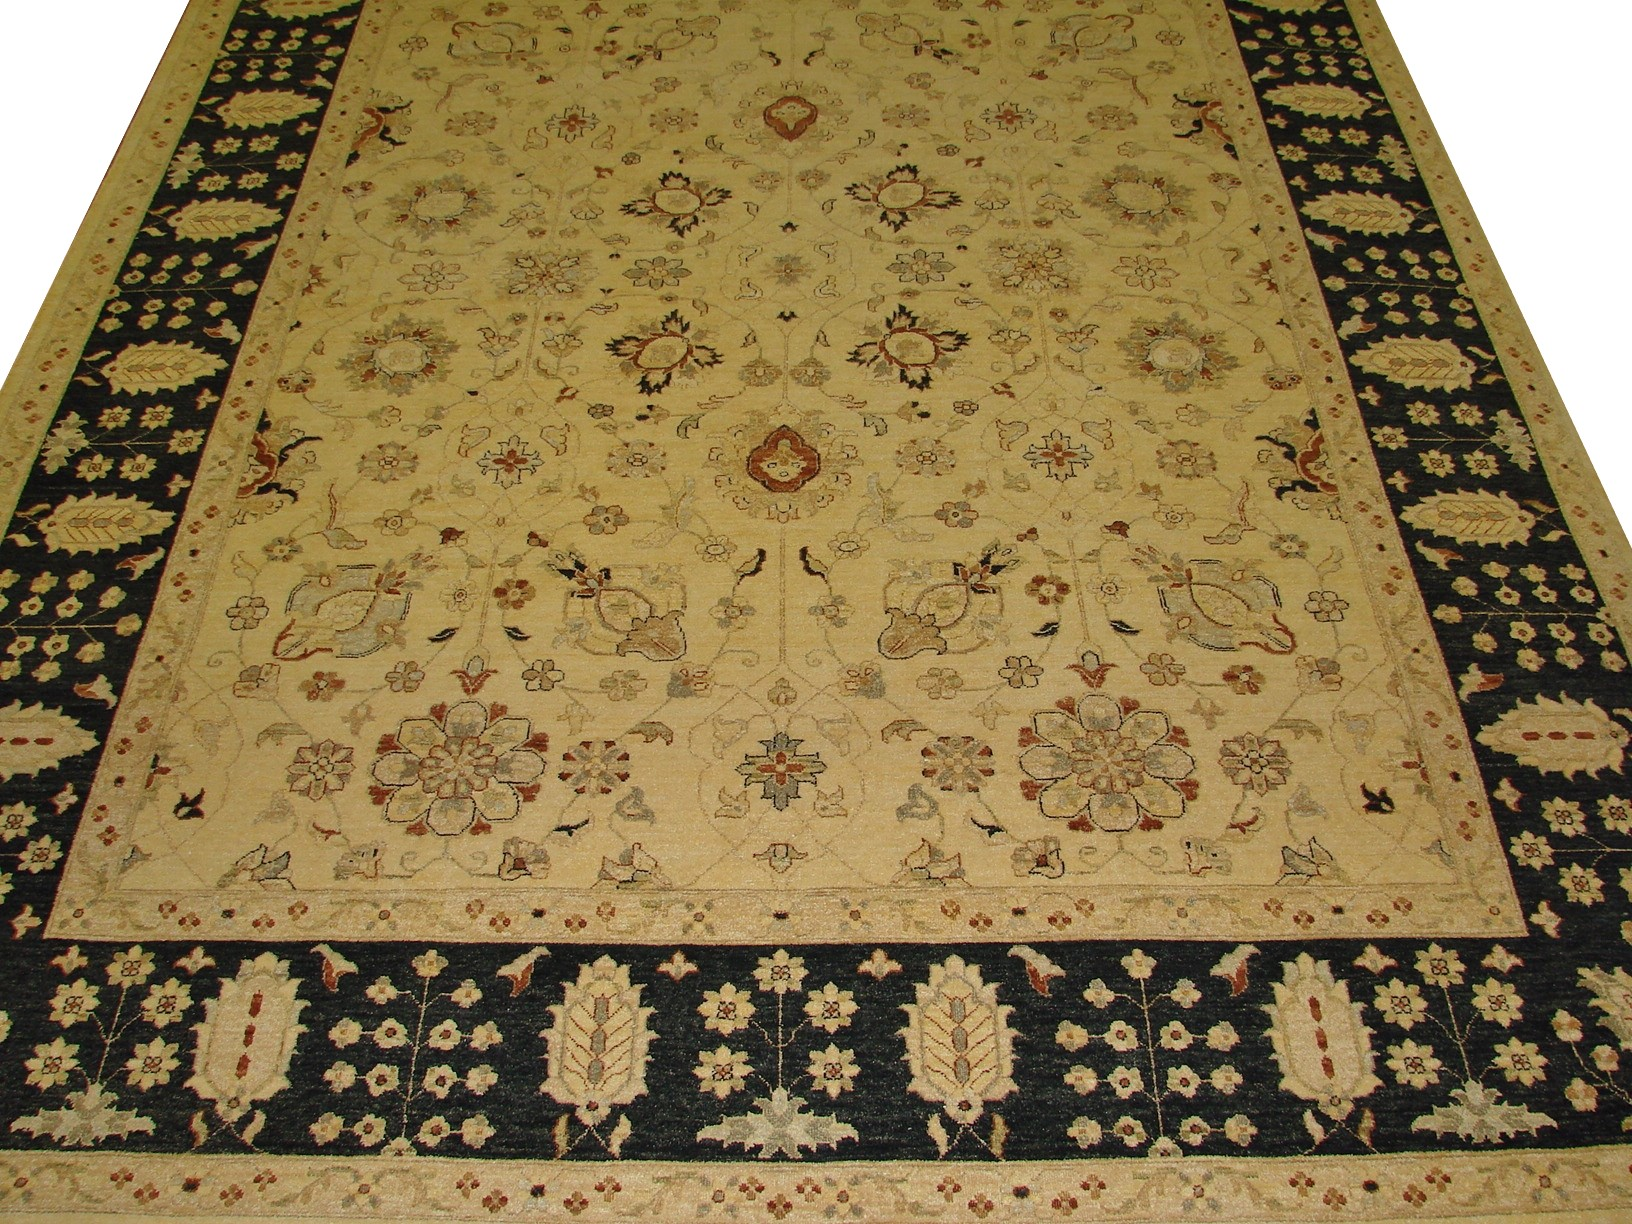 9x12 Traditional Hand Knotted Wool Area Rug - MR11213